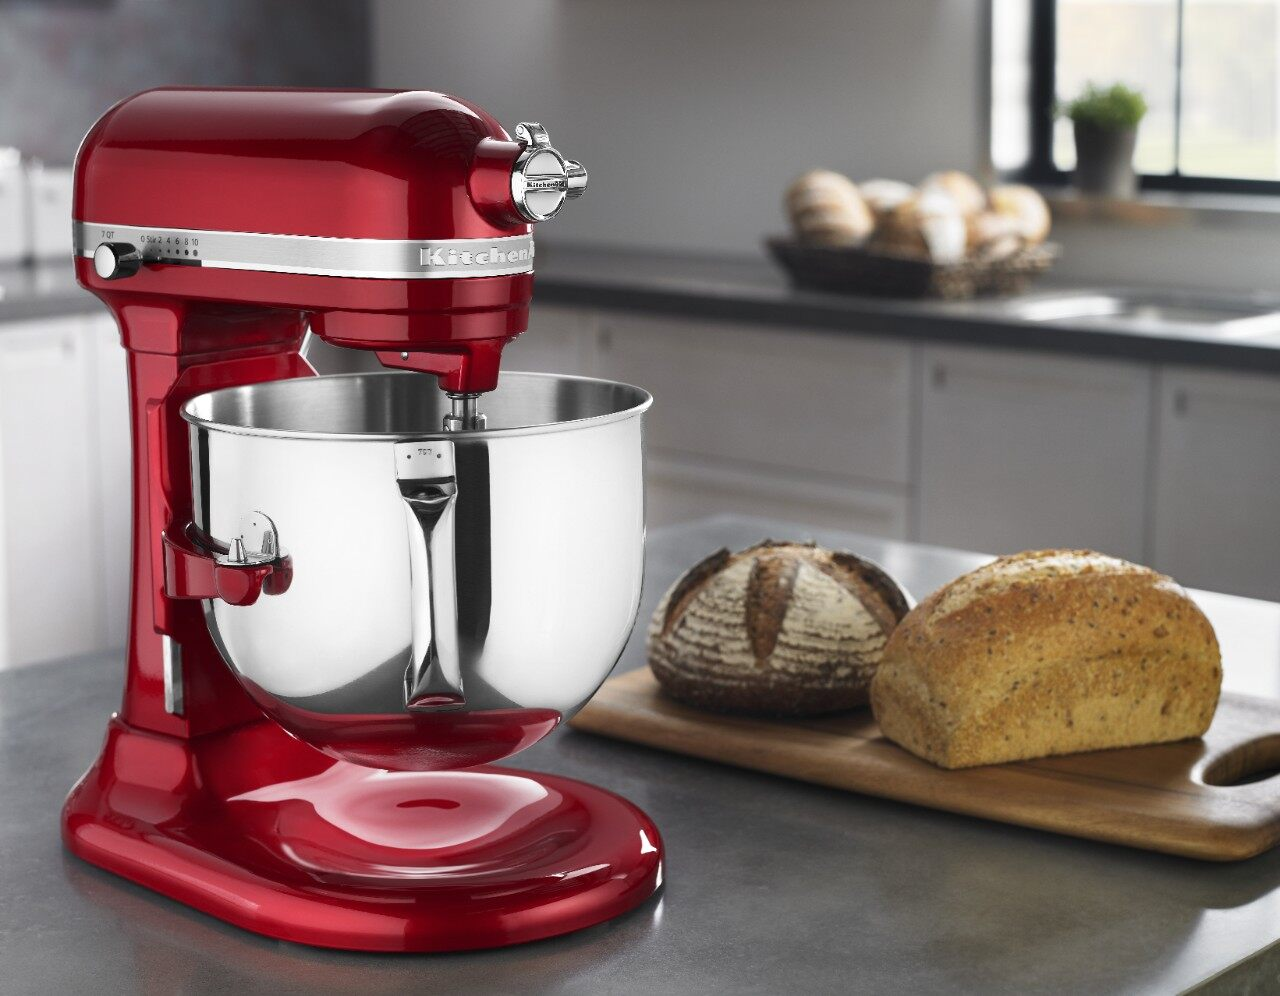 Kitchen stand mixer made in the USA